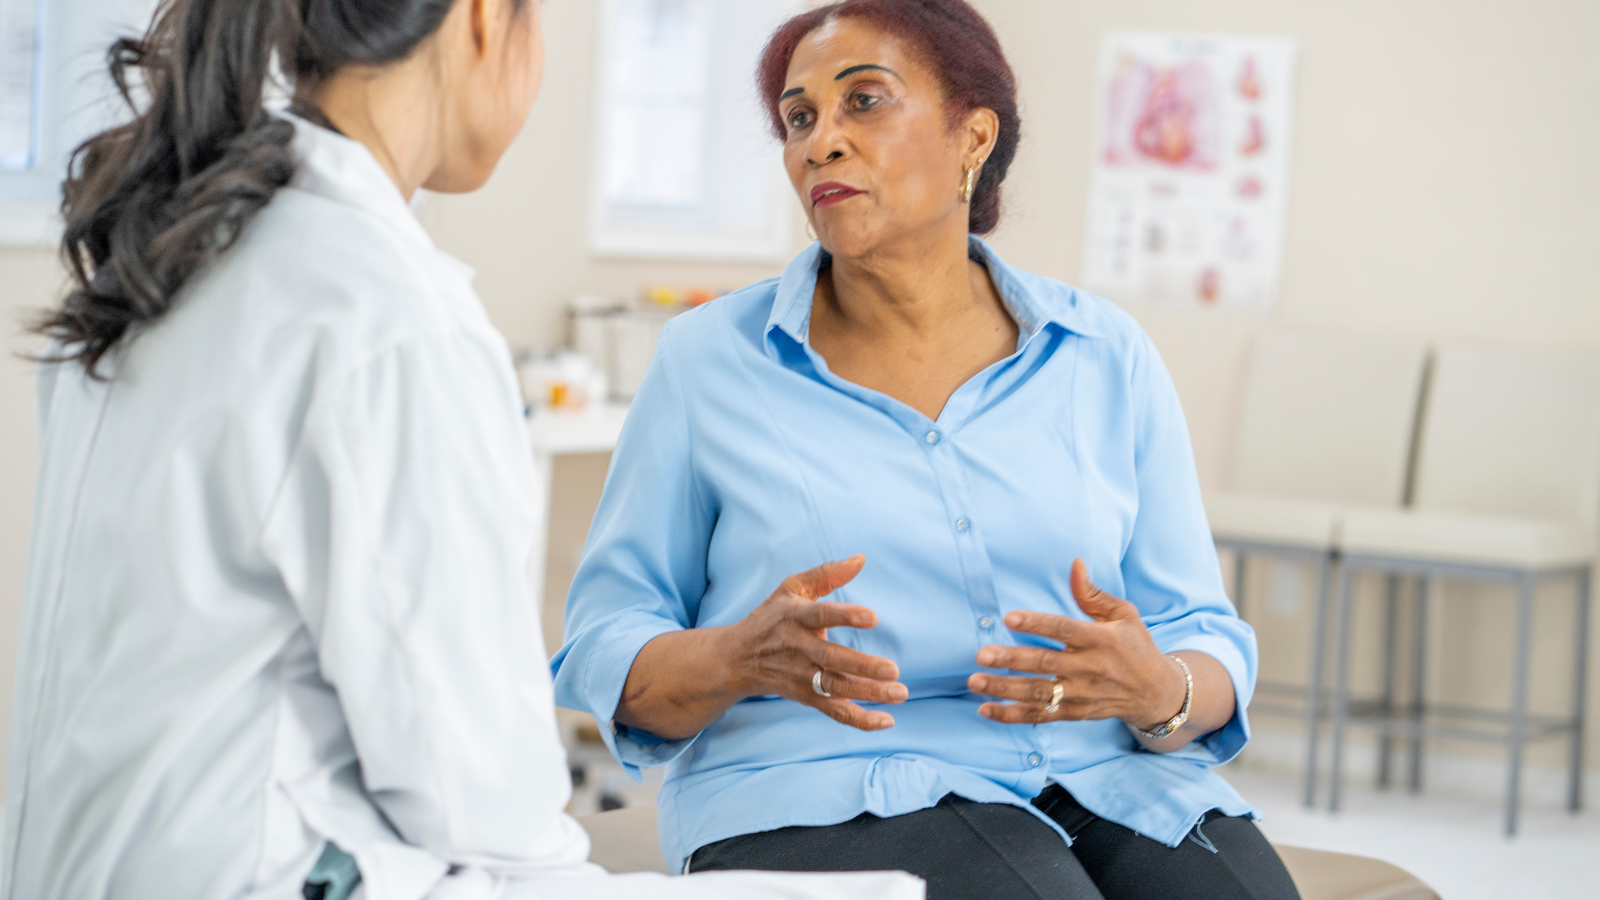 A middle-aged Black female talks to her female physician